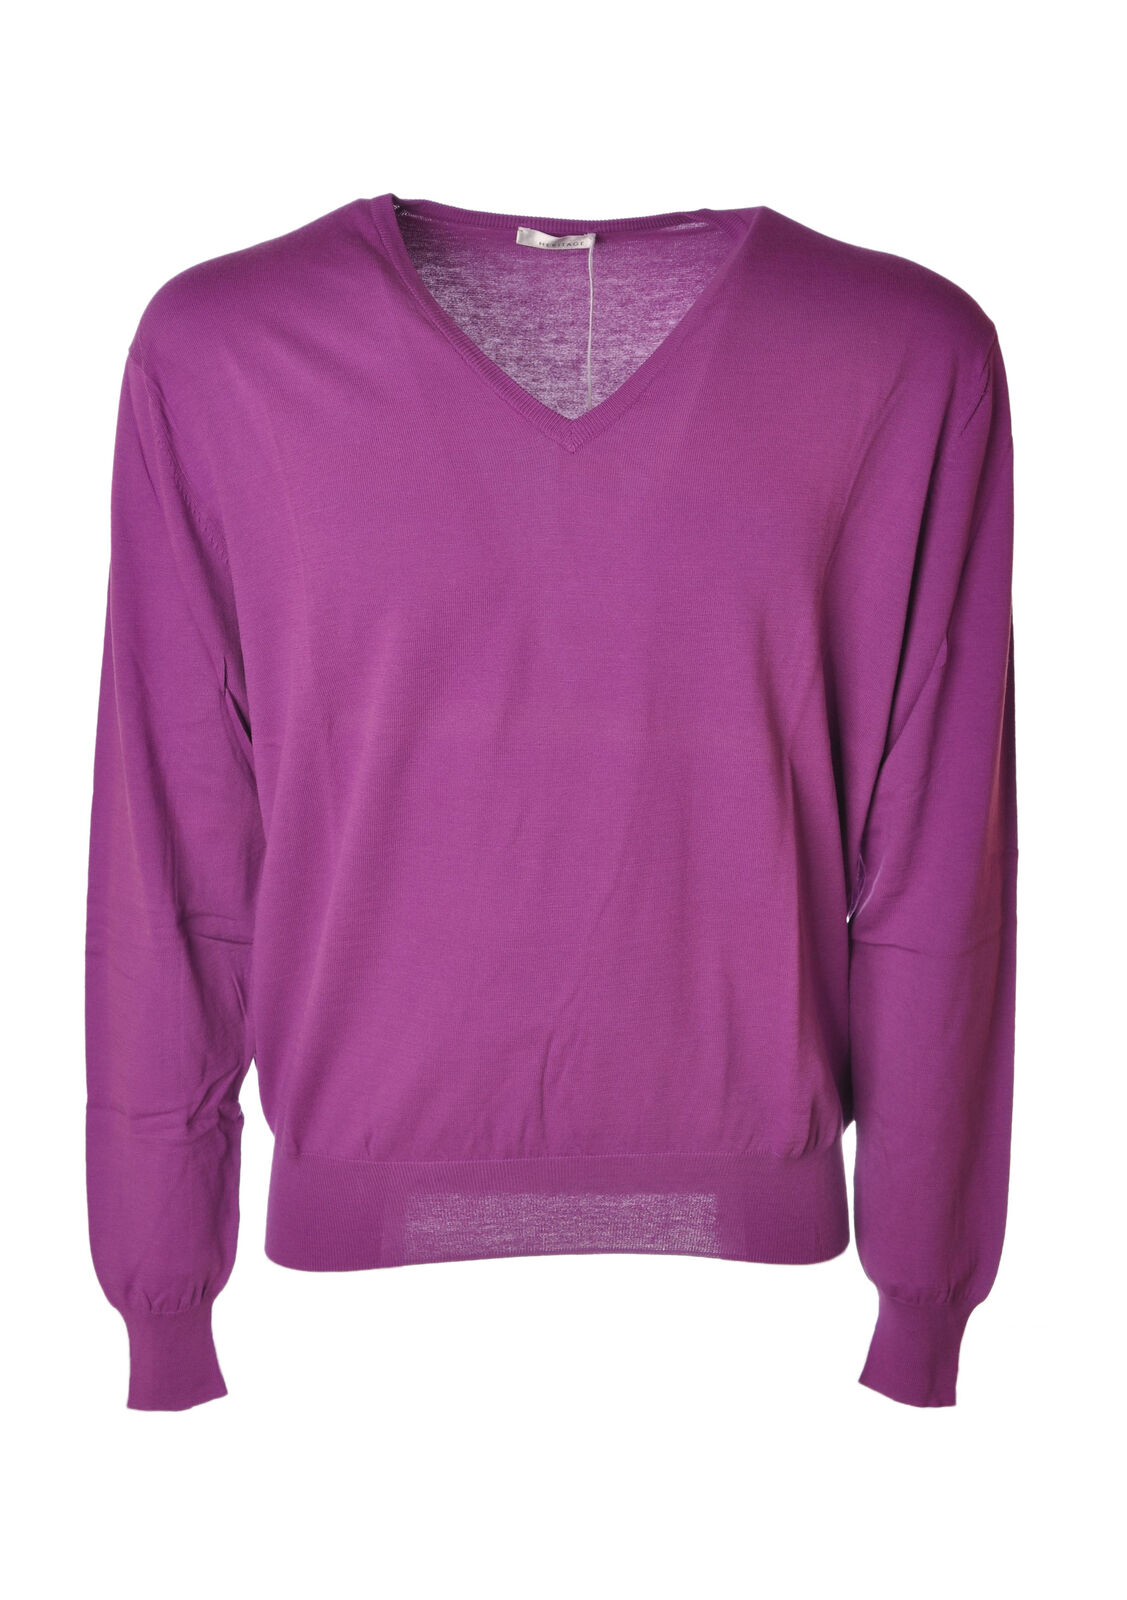 Heritage  -  Sweaters - Male - Viola - 4634122A185713